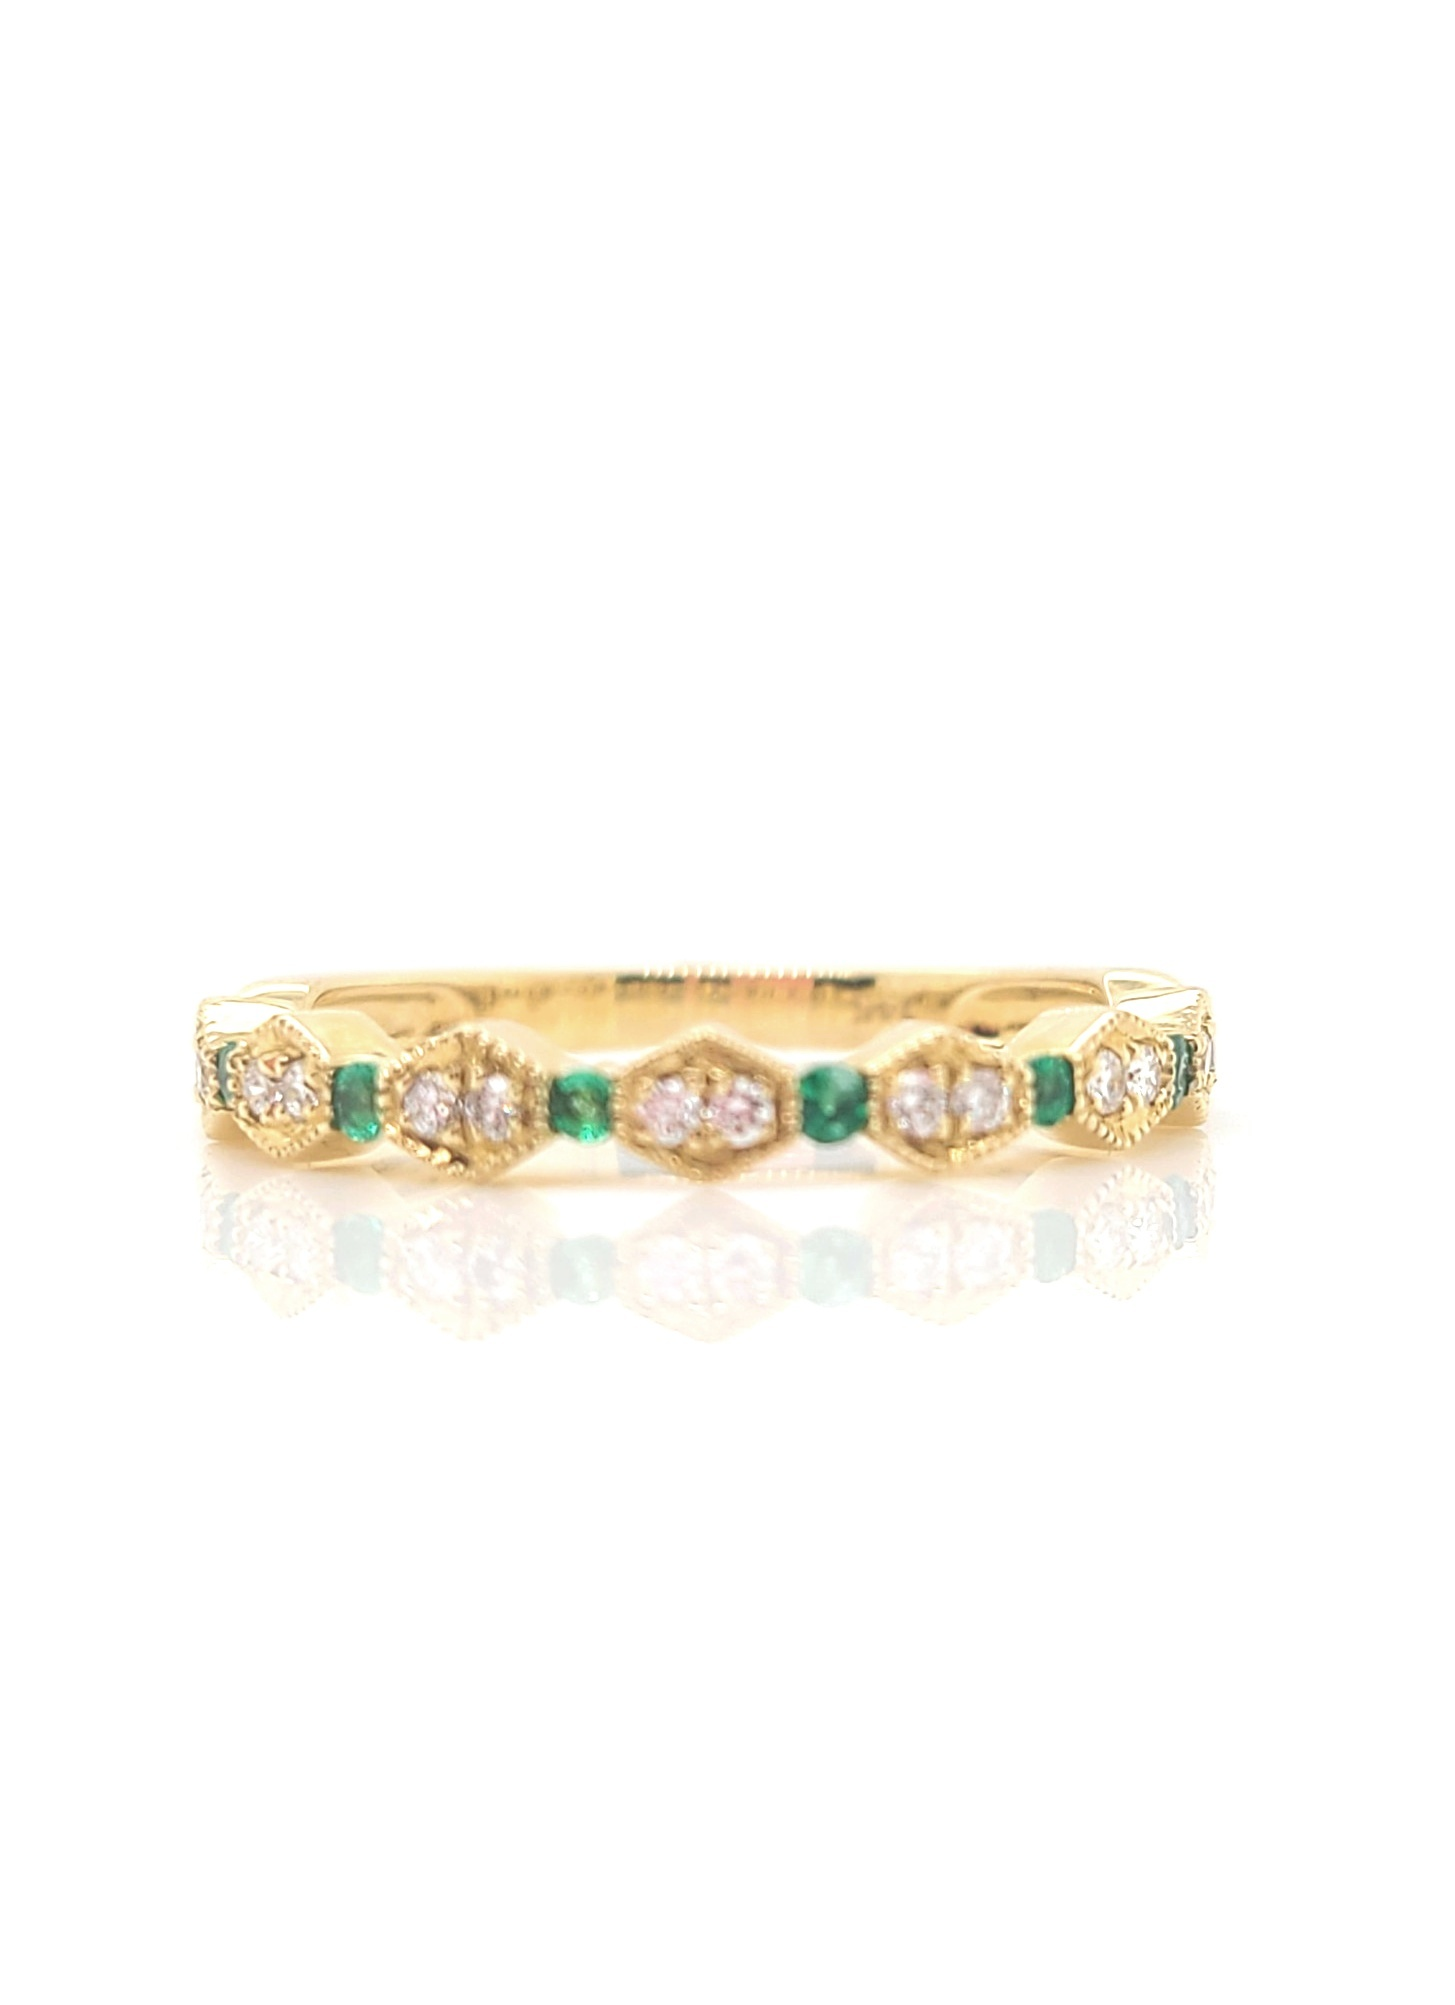 14kt Yellow Gold, Emerald & Diamond Stackable Ring